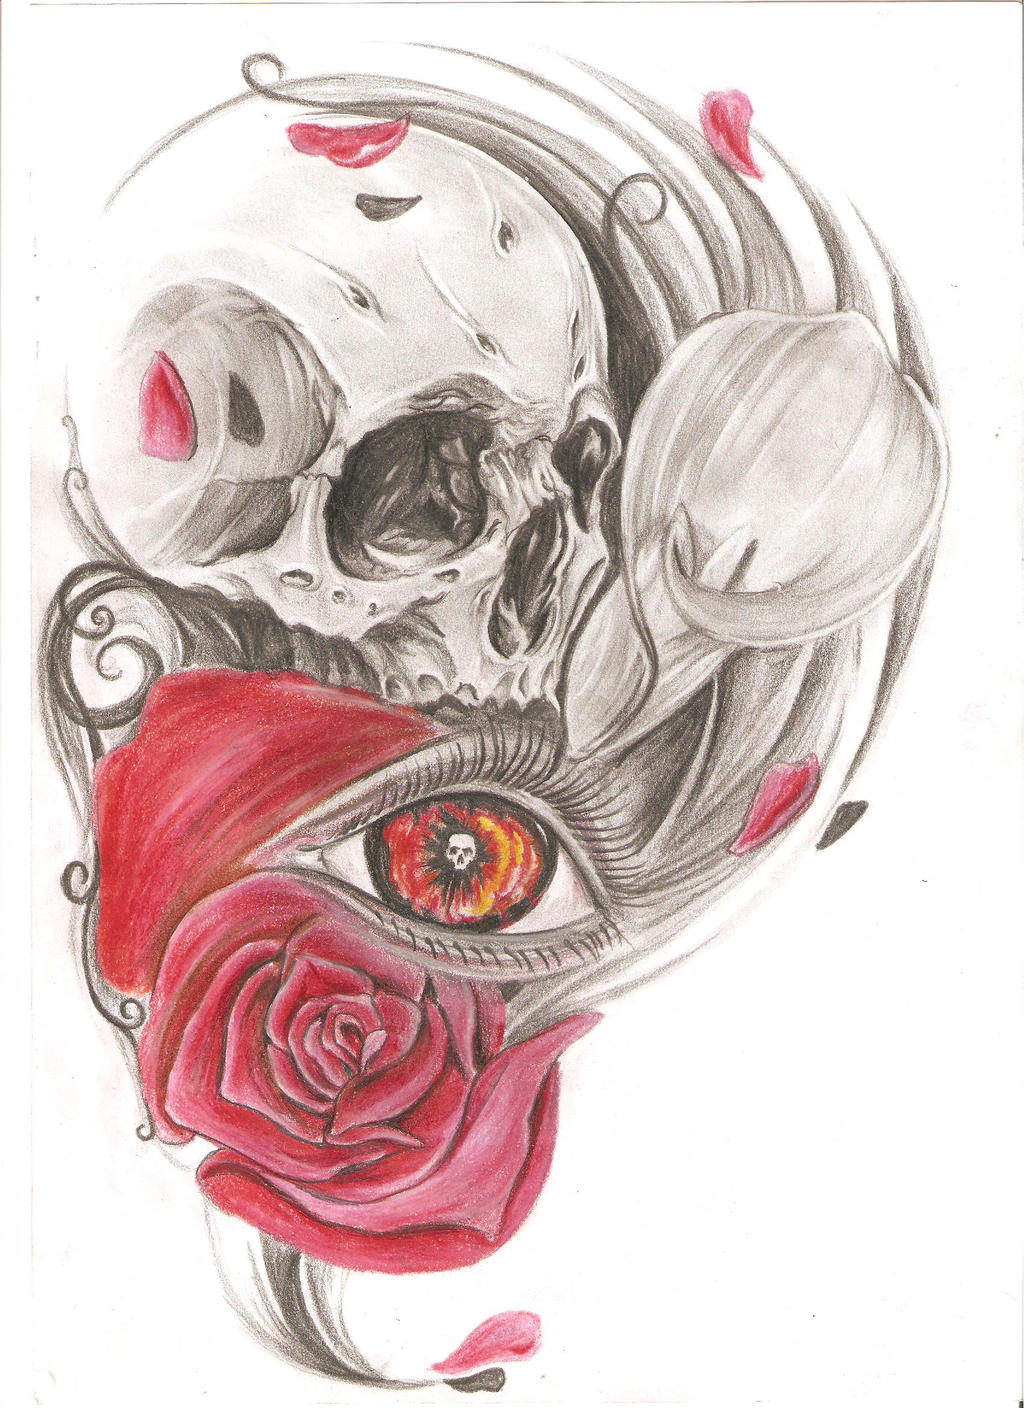 skull and flowers by Kiddotattoo on DeviantArt